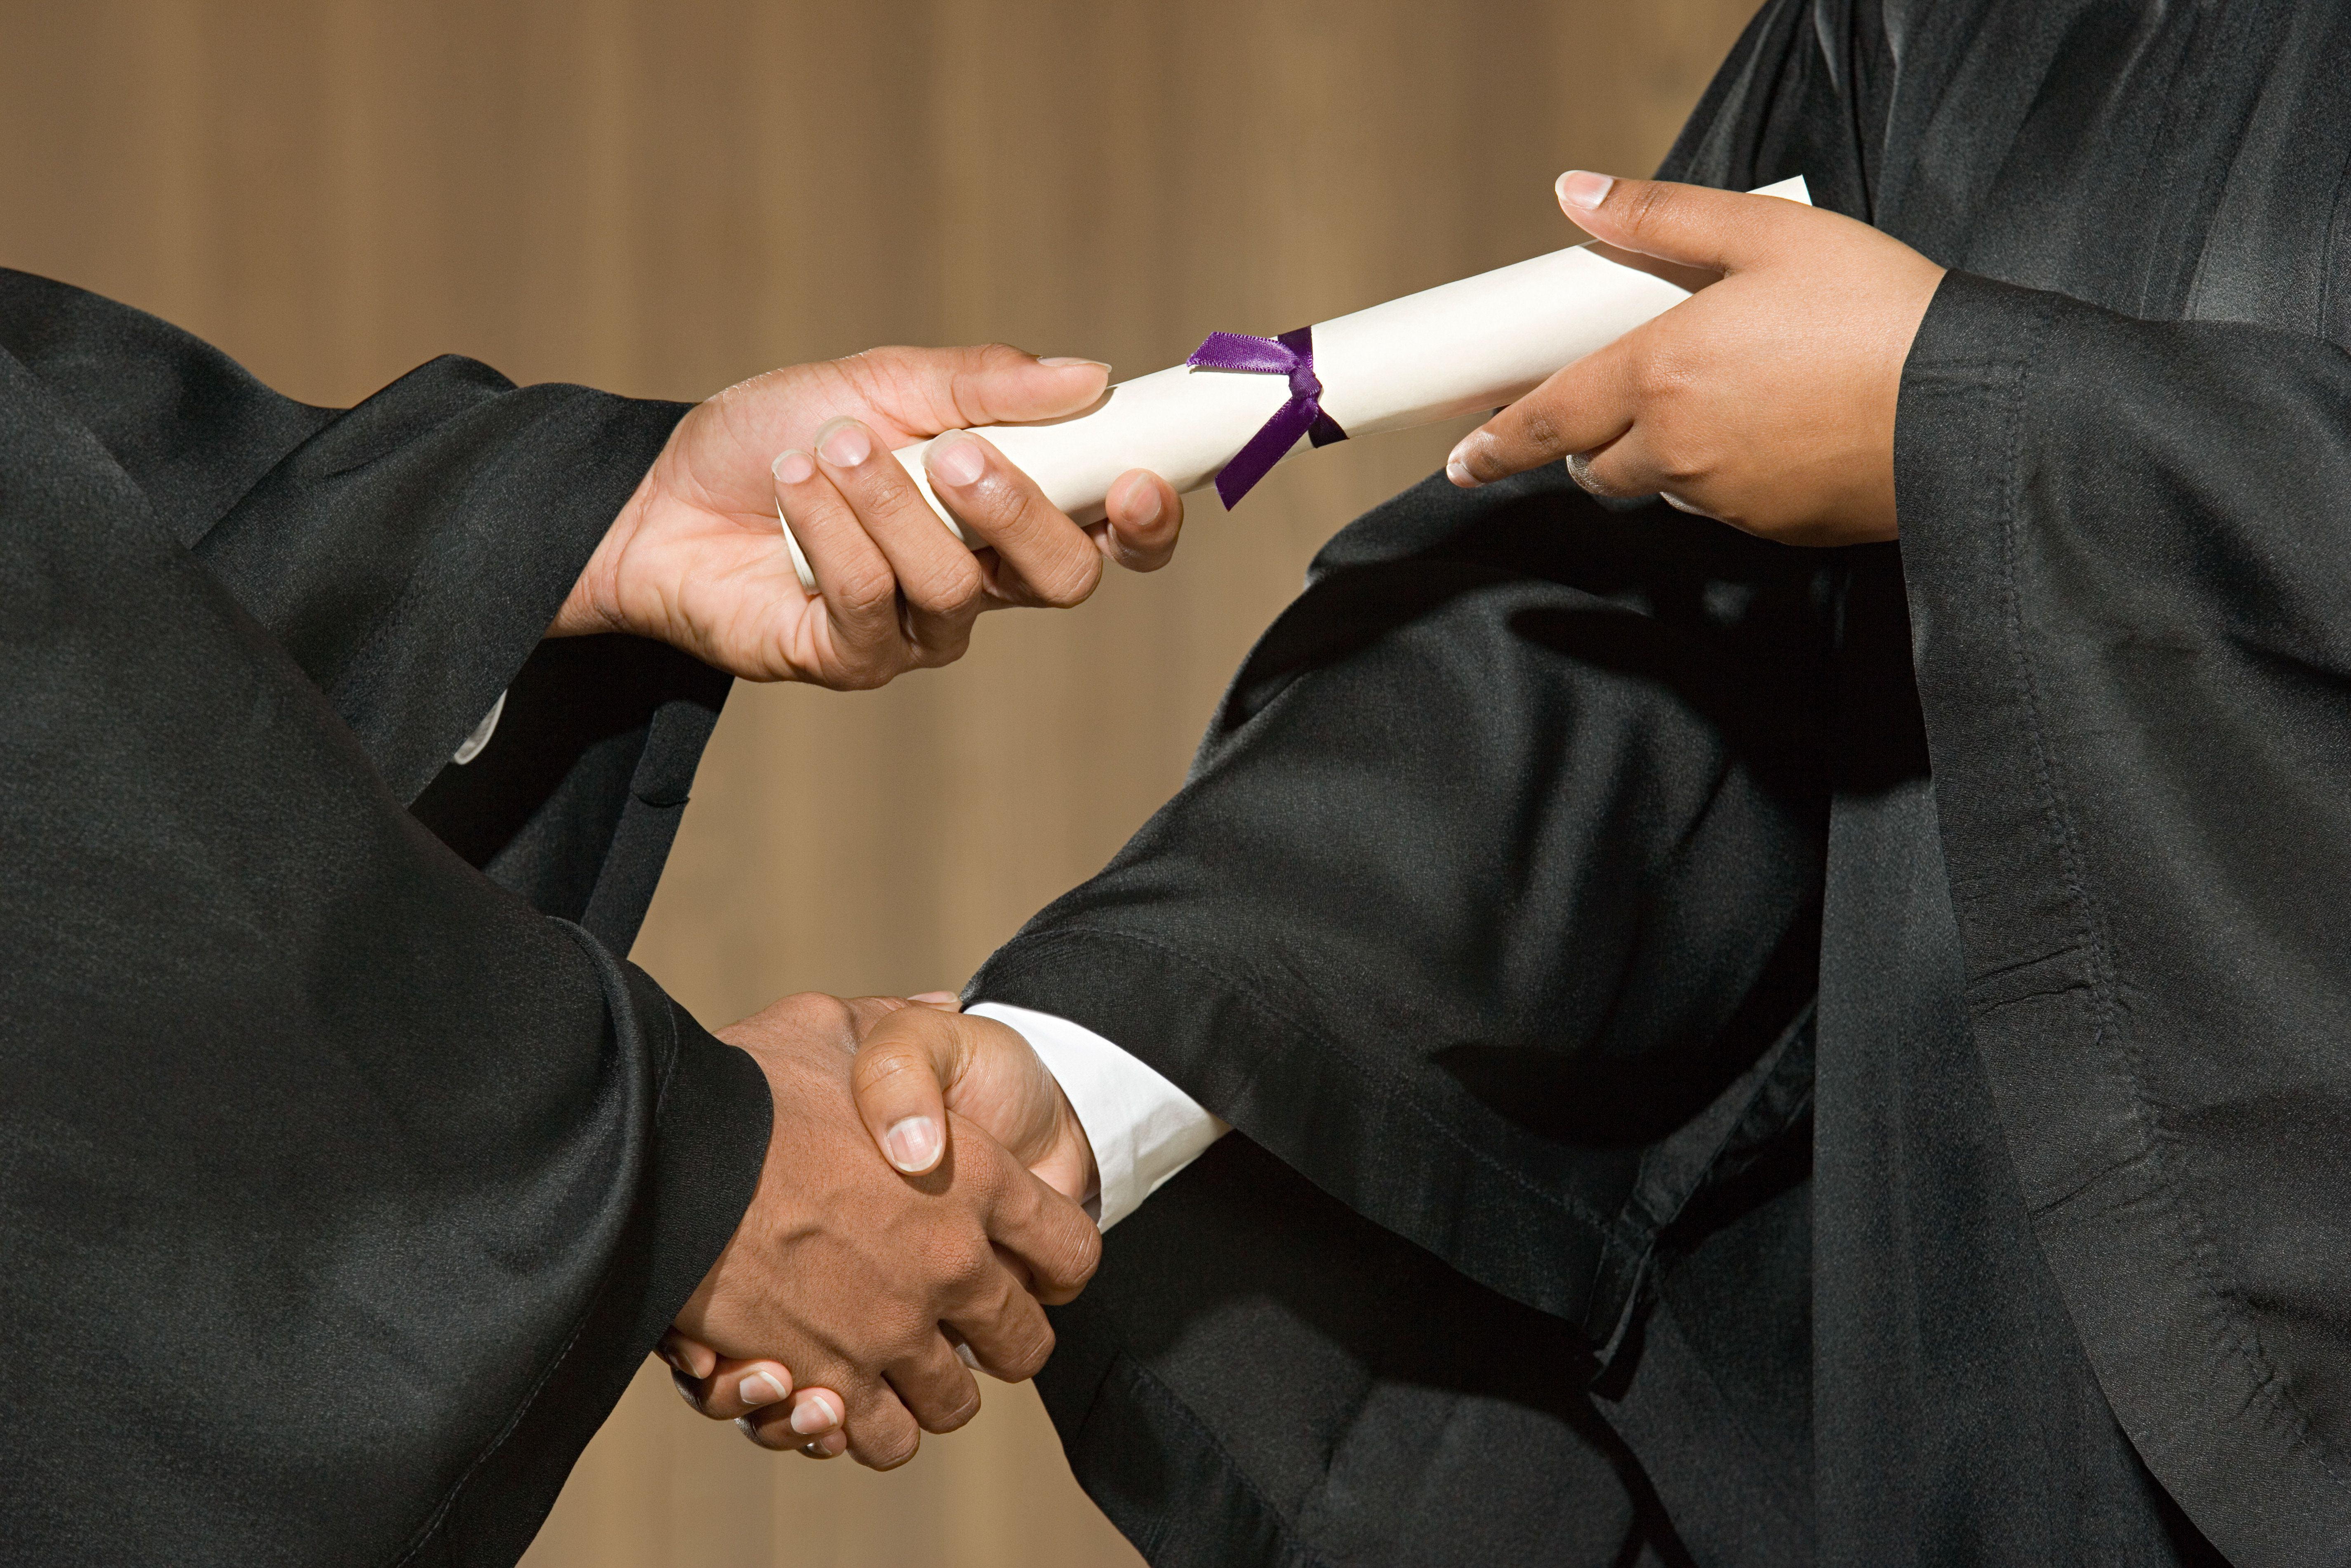 If You're Black, Your Uni Application Is More Likely To Be Flagged As